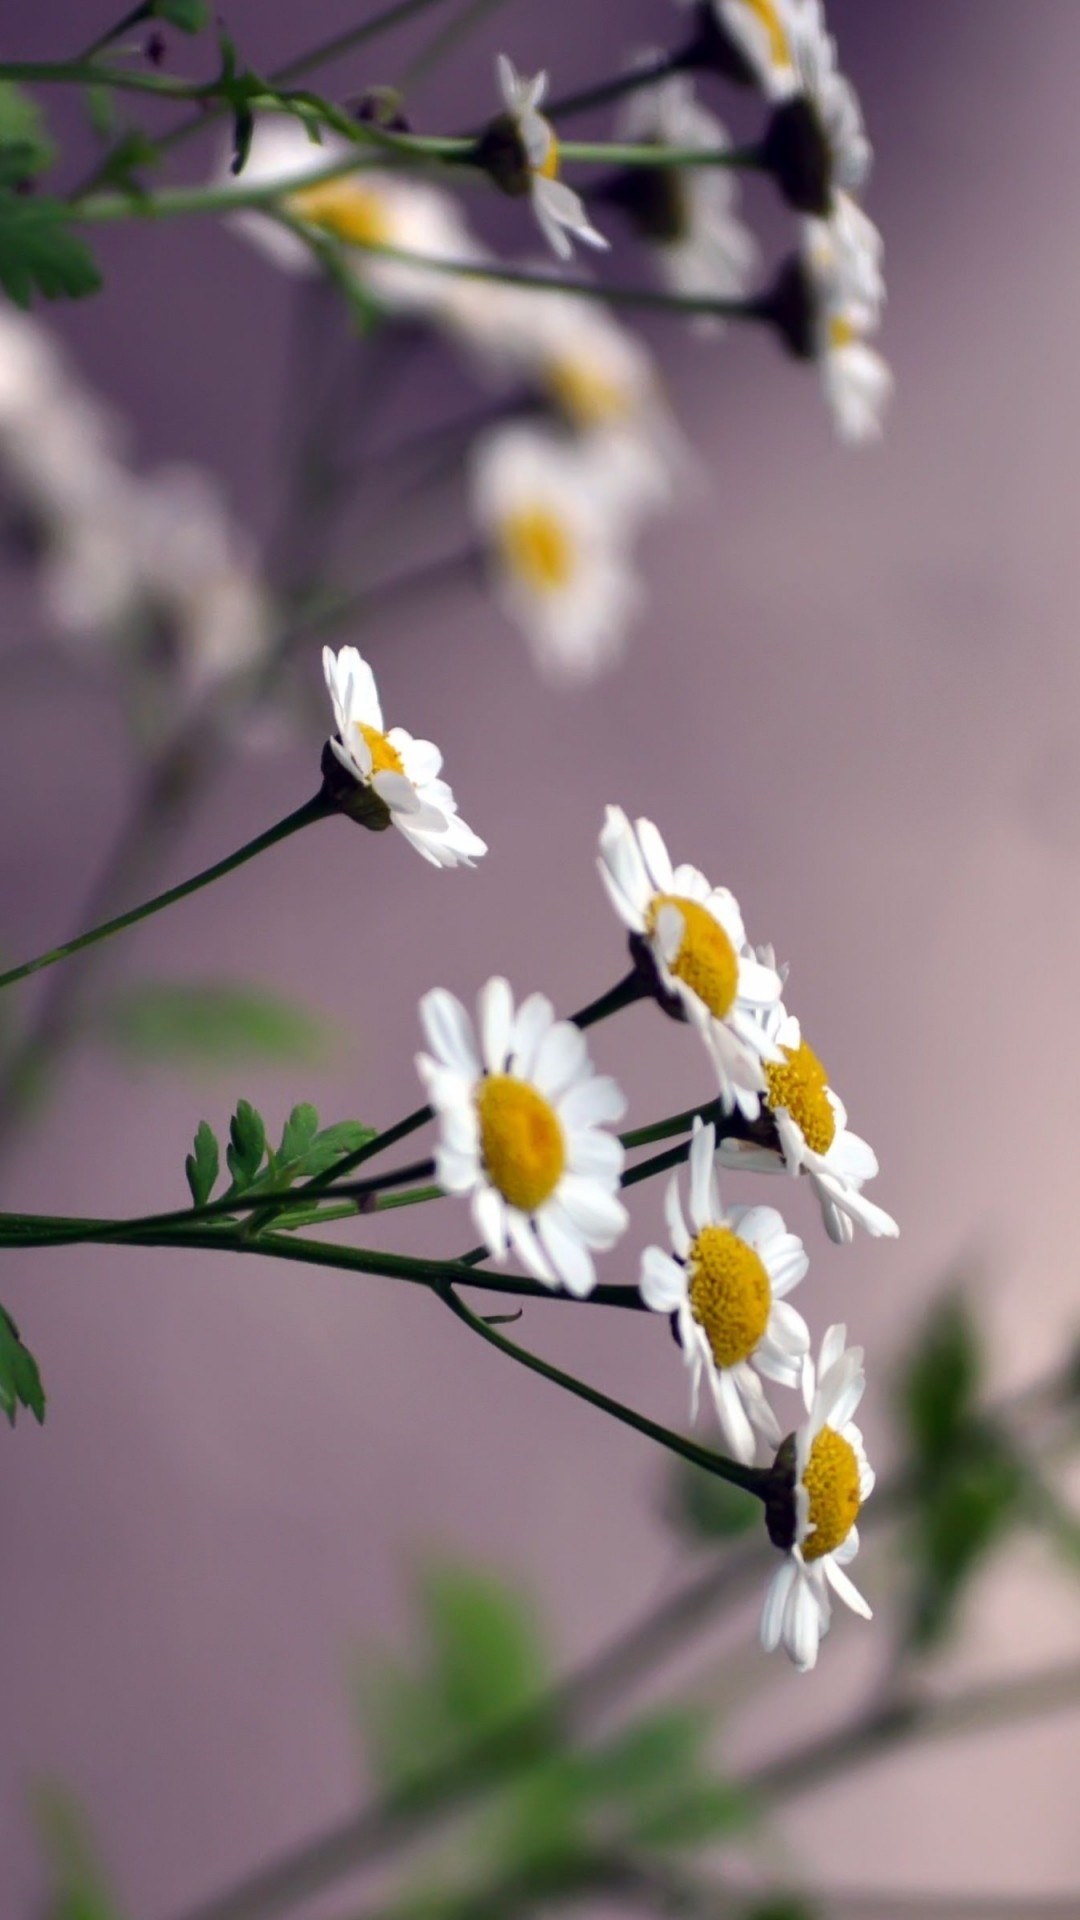 Daisy Flowers Wallpaper for SAMSUNG Galaxy S5